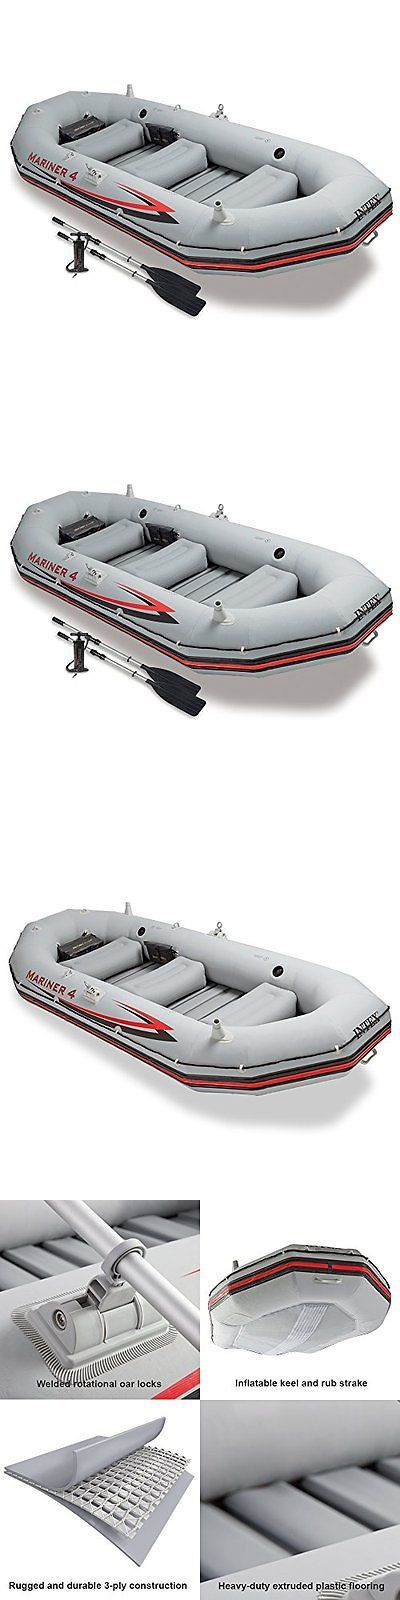 Inflatables 87090: Boating Ntex 4 Person Inflatable Raft River Lake Dinghy Boat Oars Mariner Relax -> BUY IT NOW ONLY: $362.17 on eBay!